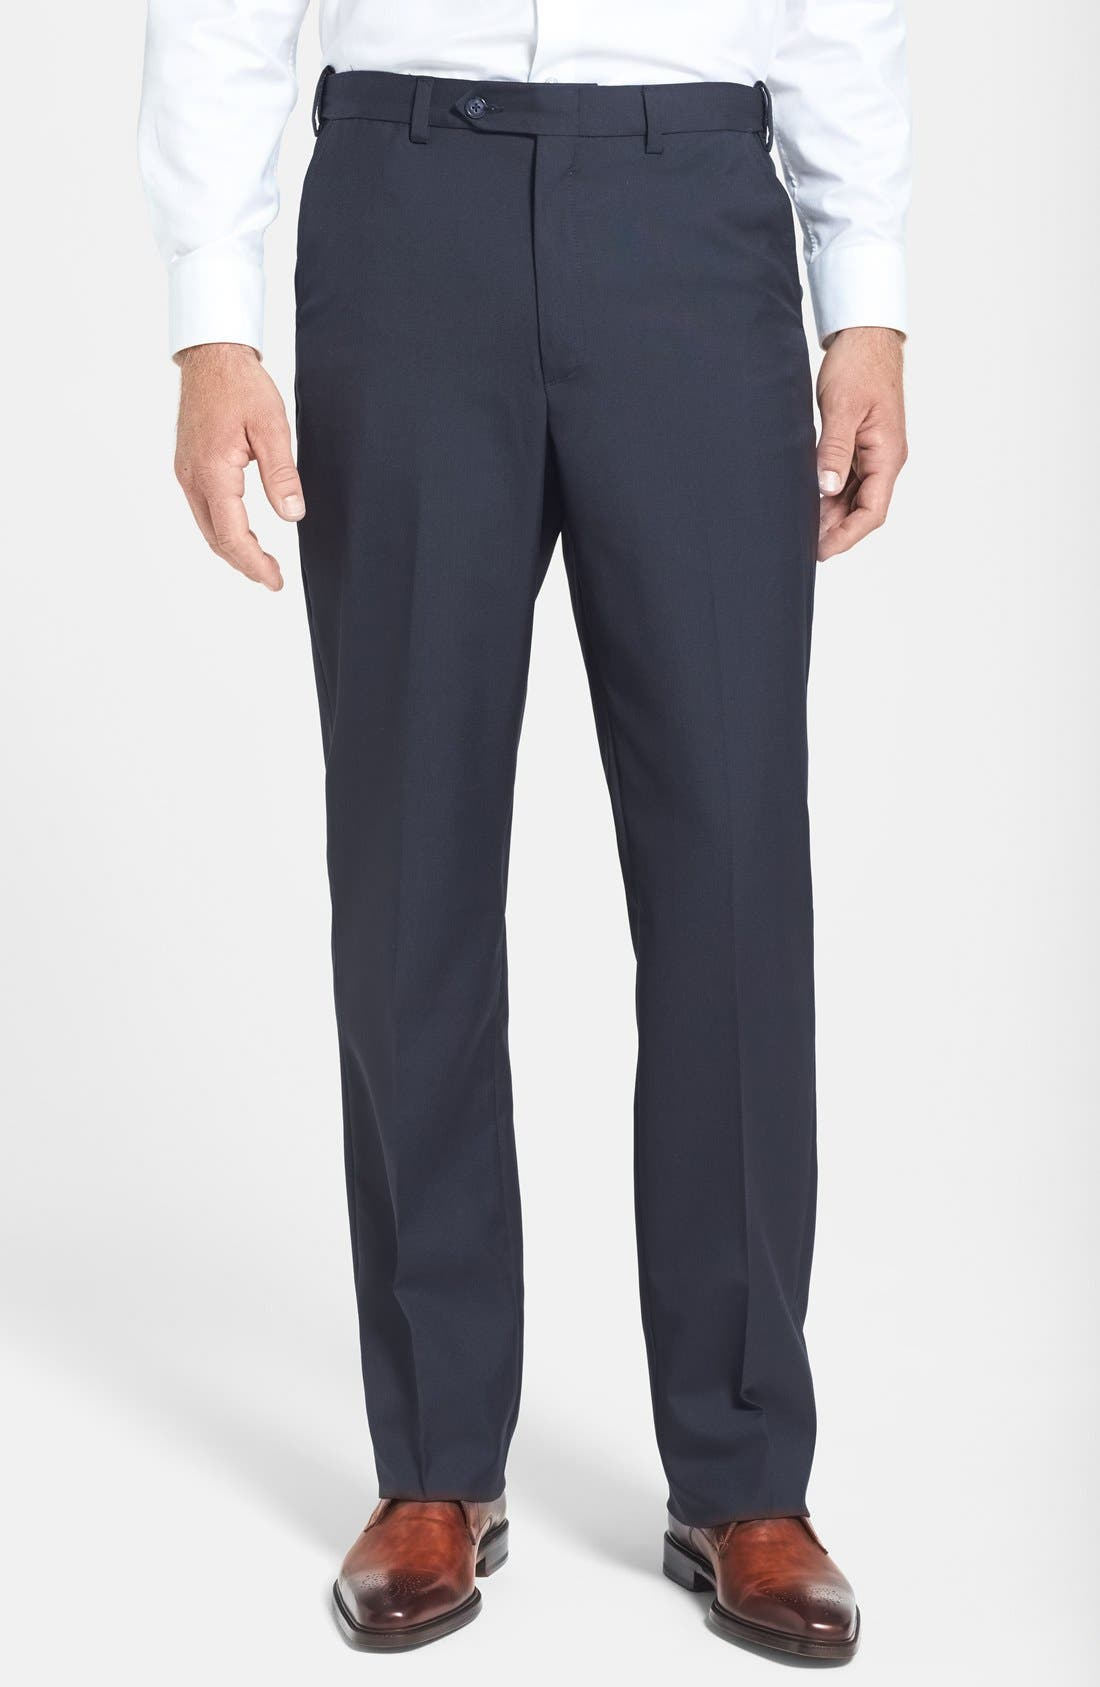 Alternate Image 1 Selected - Berle Self Sizer Waist Tropical Weight Flat Front Trousers